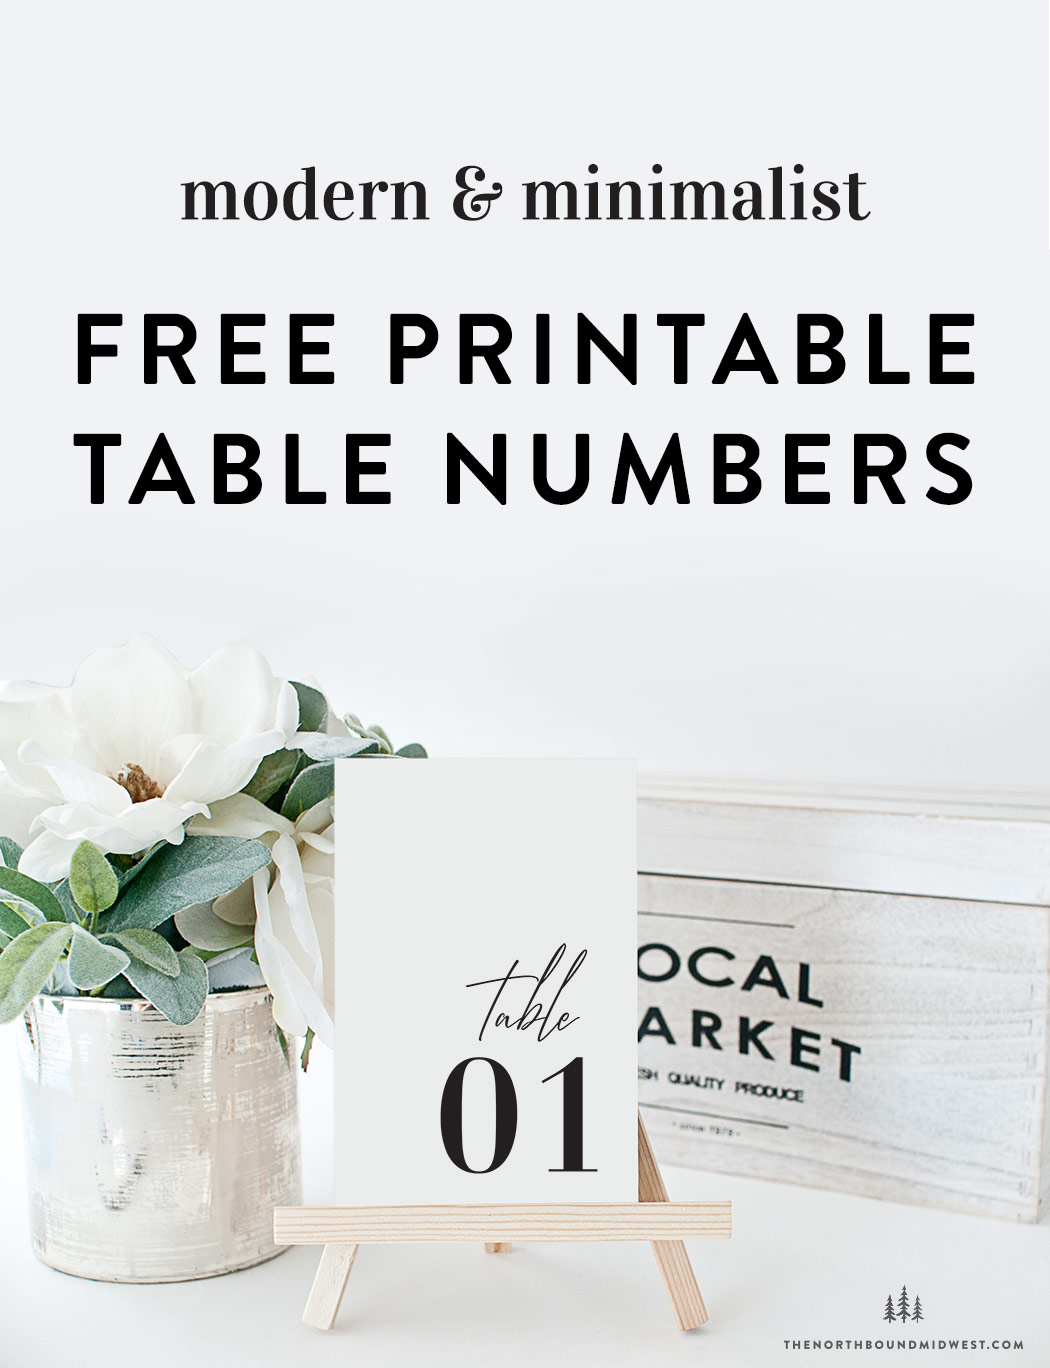 Minimalist Free Printable Table Numbers